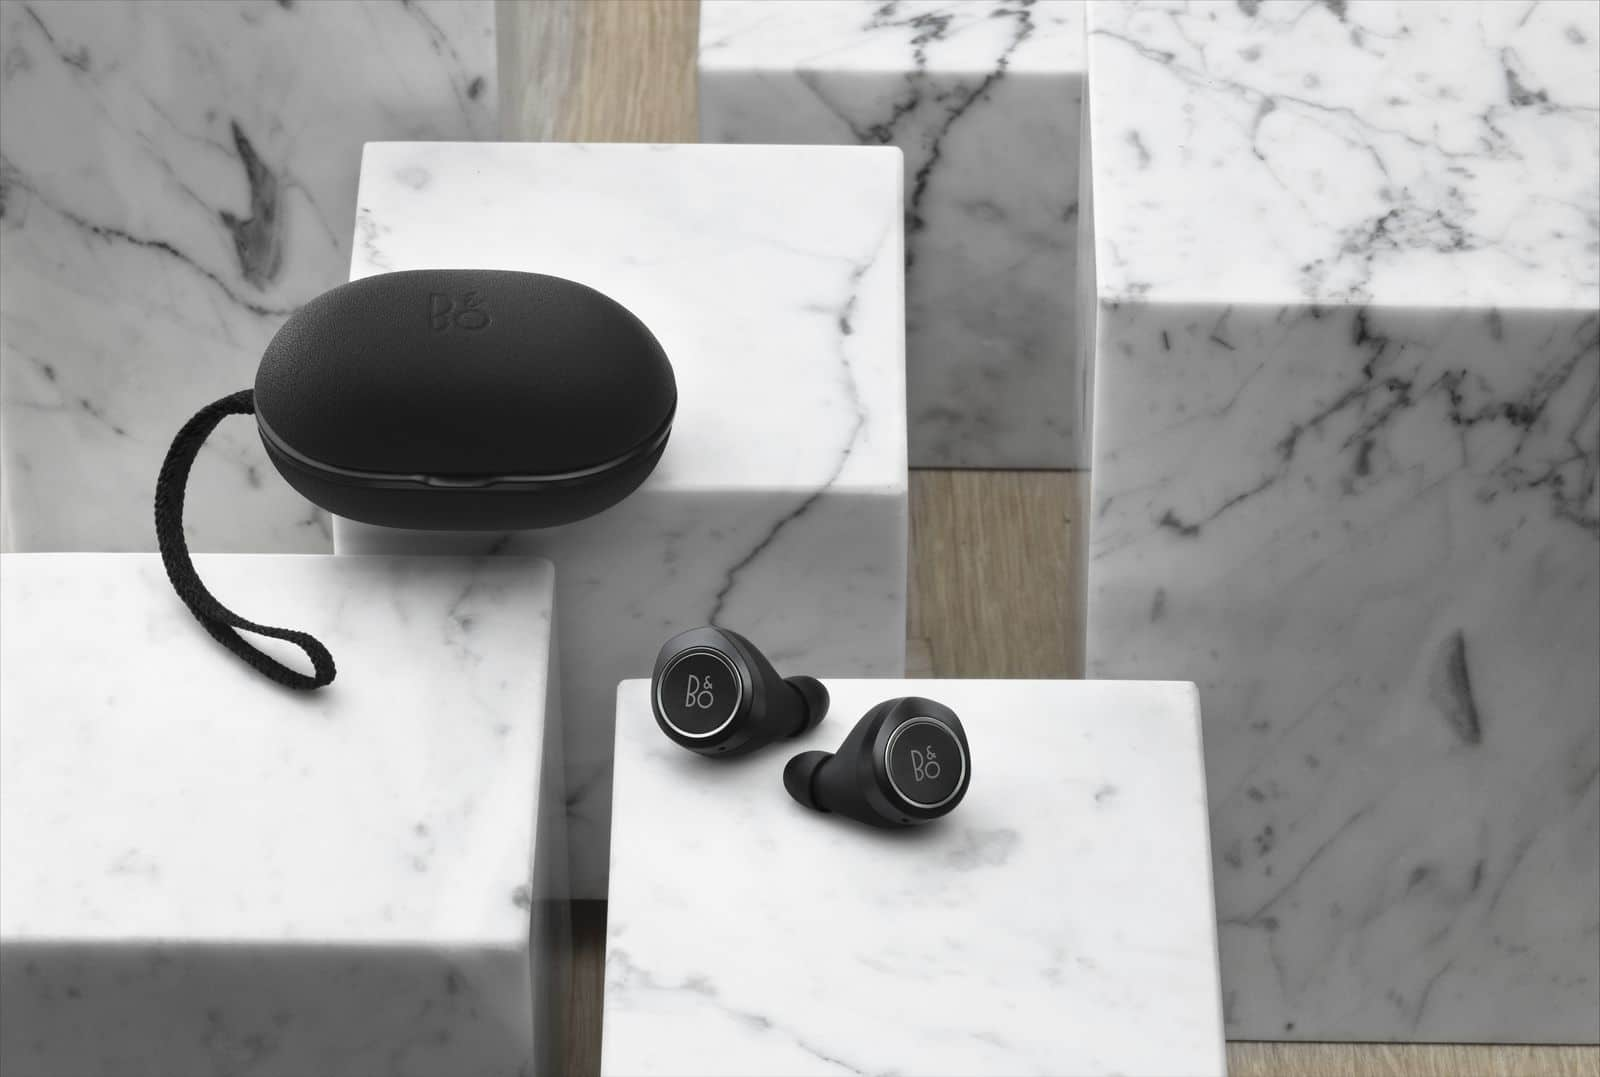 Beoplay E8 Earbuds